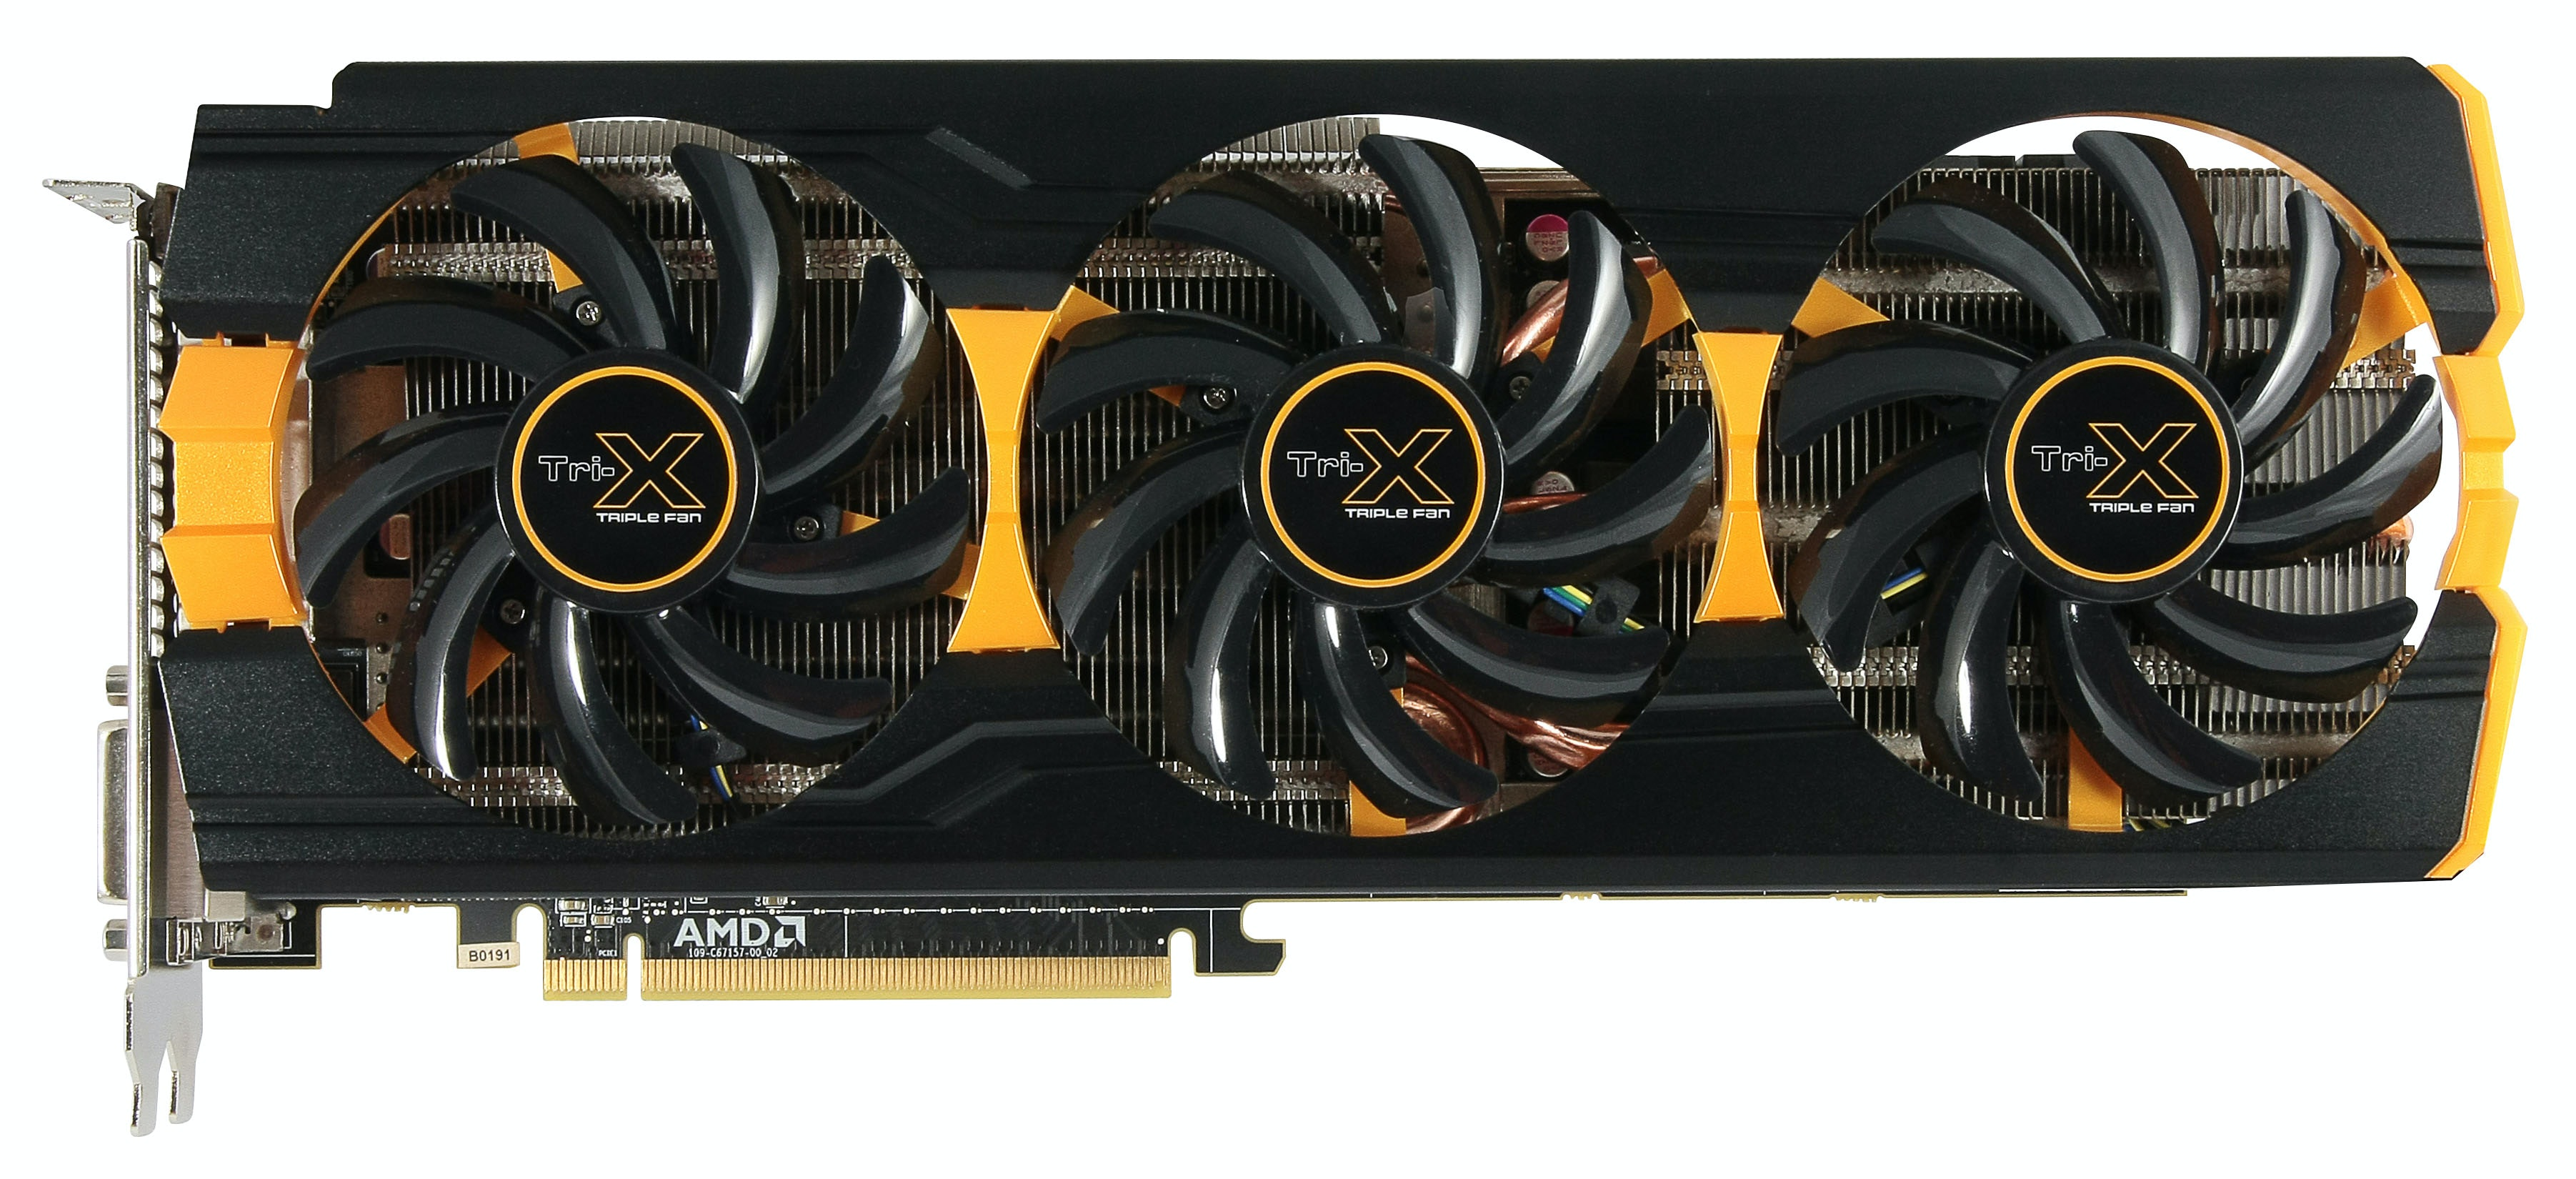 Amazon.com: Sapphire Radeon R9 290 4GB GDDR5 DUAL DVI-D/HDMI/DP TRI-X OC Version